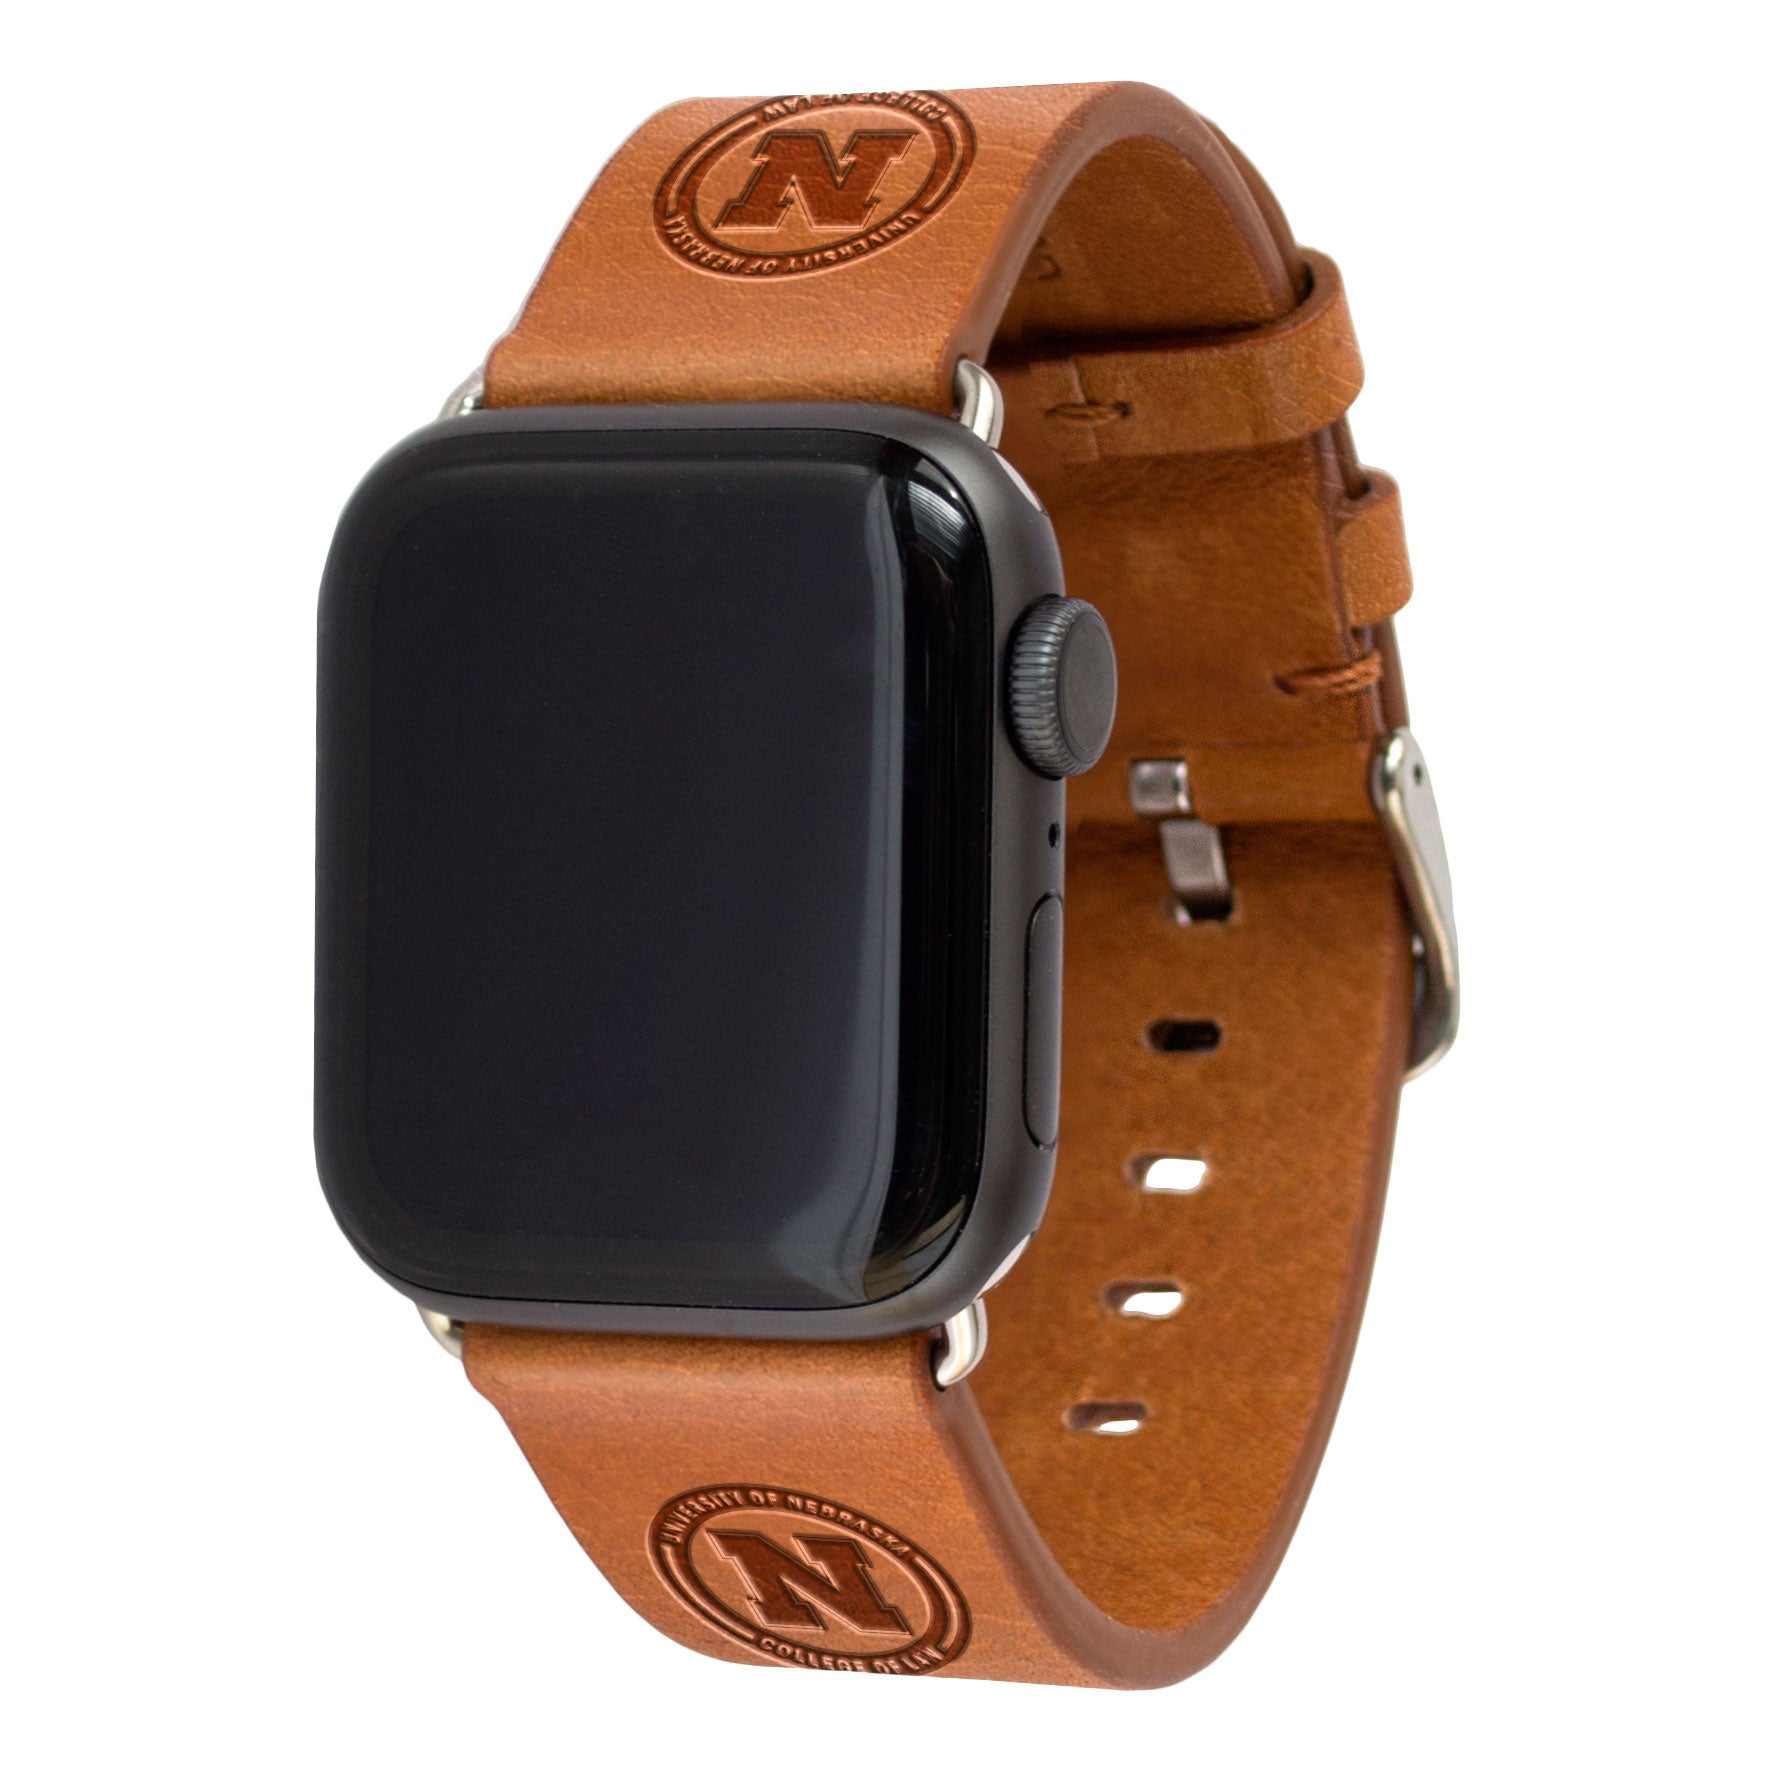 University of Nebraska College of Law Leather Apple Watch Band